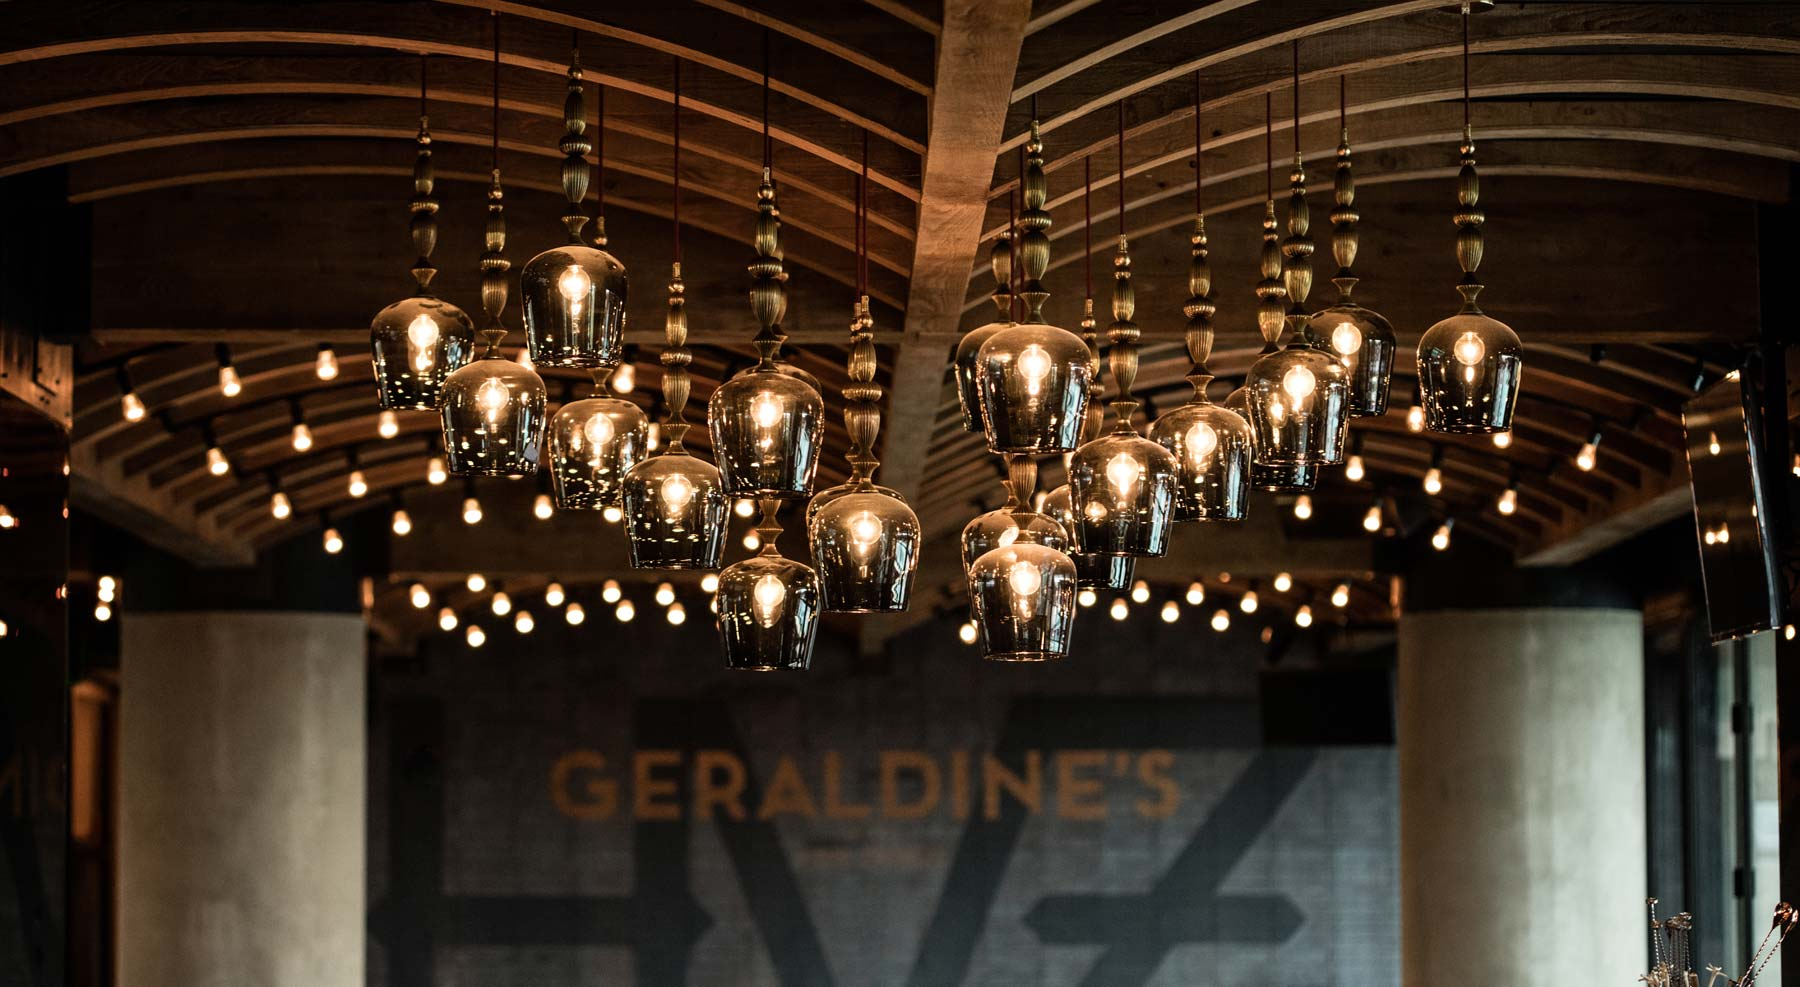 Geraldine's - A Rainey Street Restaurant